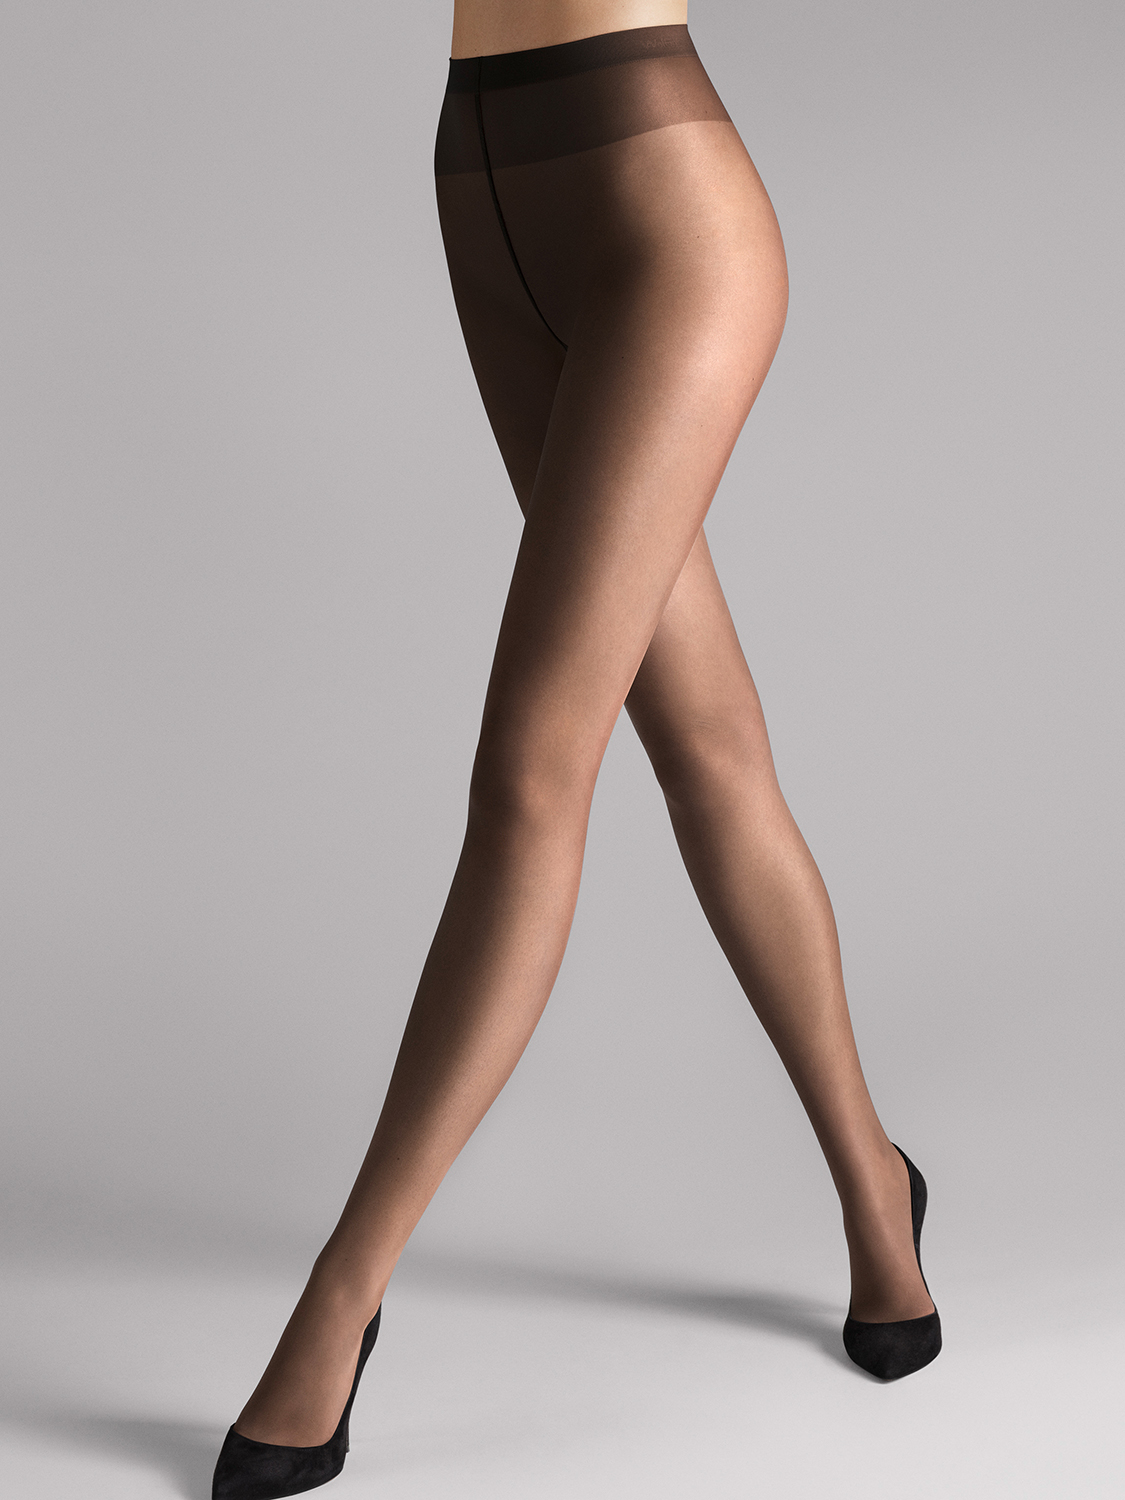 Колготы sheer 15 tights фото